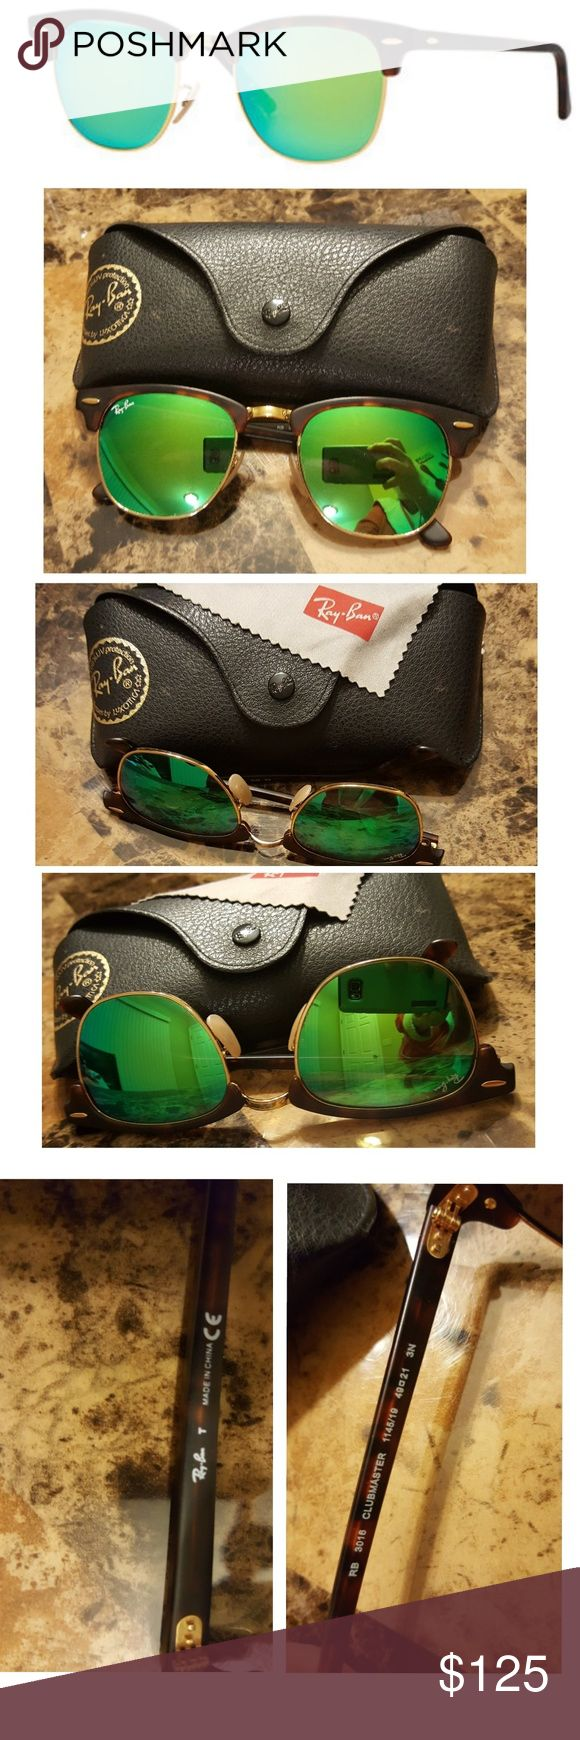 Ray Ban Clubmaster Green Mirror Sunglasses RAY BAN CLUBMASTER RB 3016 114519  FLASH GREY GREEN MIRROR LENSES SUNGLASSES  Only worn twice! Tortoise frame  Comes with carrying case (cleaning cloth not included)  Very minor/small scratch on side where ray ban logo is just noticed it today. Cant even tell! (Which is why I just lowered my price)  Retails for $190 Ray-Ban Accessories Sunglasses